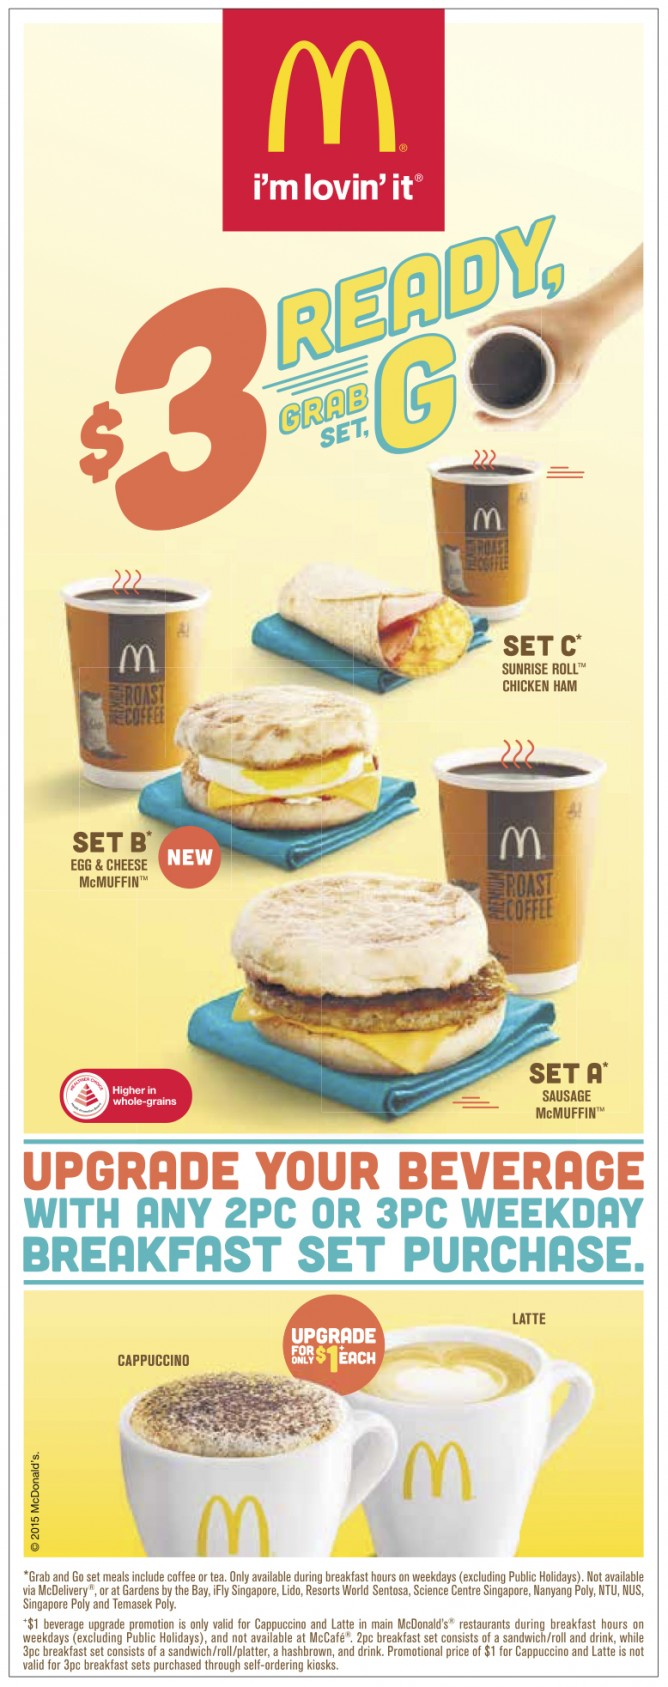 Mcdonalds Sg Coupon Mm Code 20 Voucher Mc Donalds Mcdeliverycoin Codes Great Savings W November 11